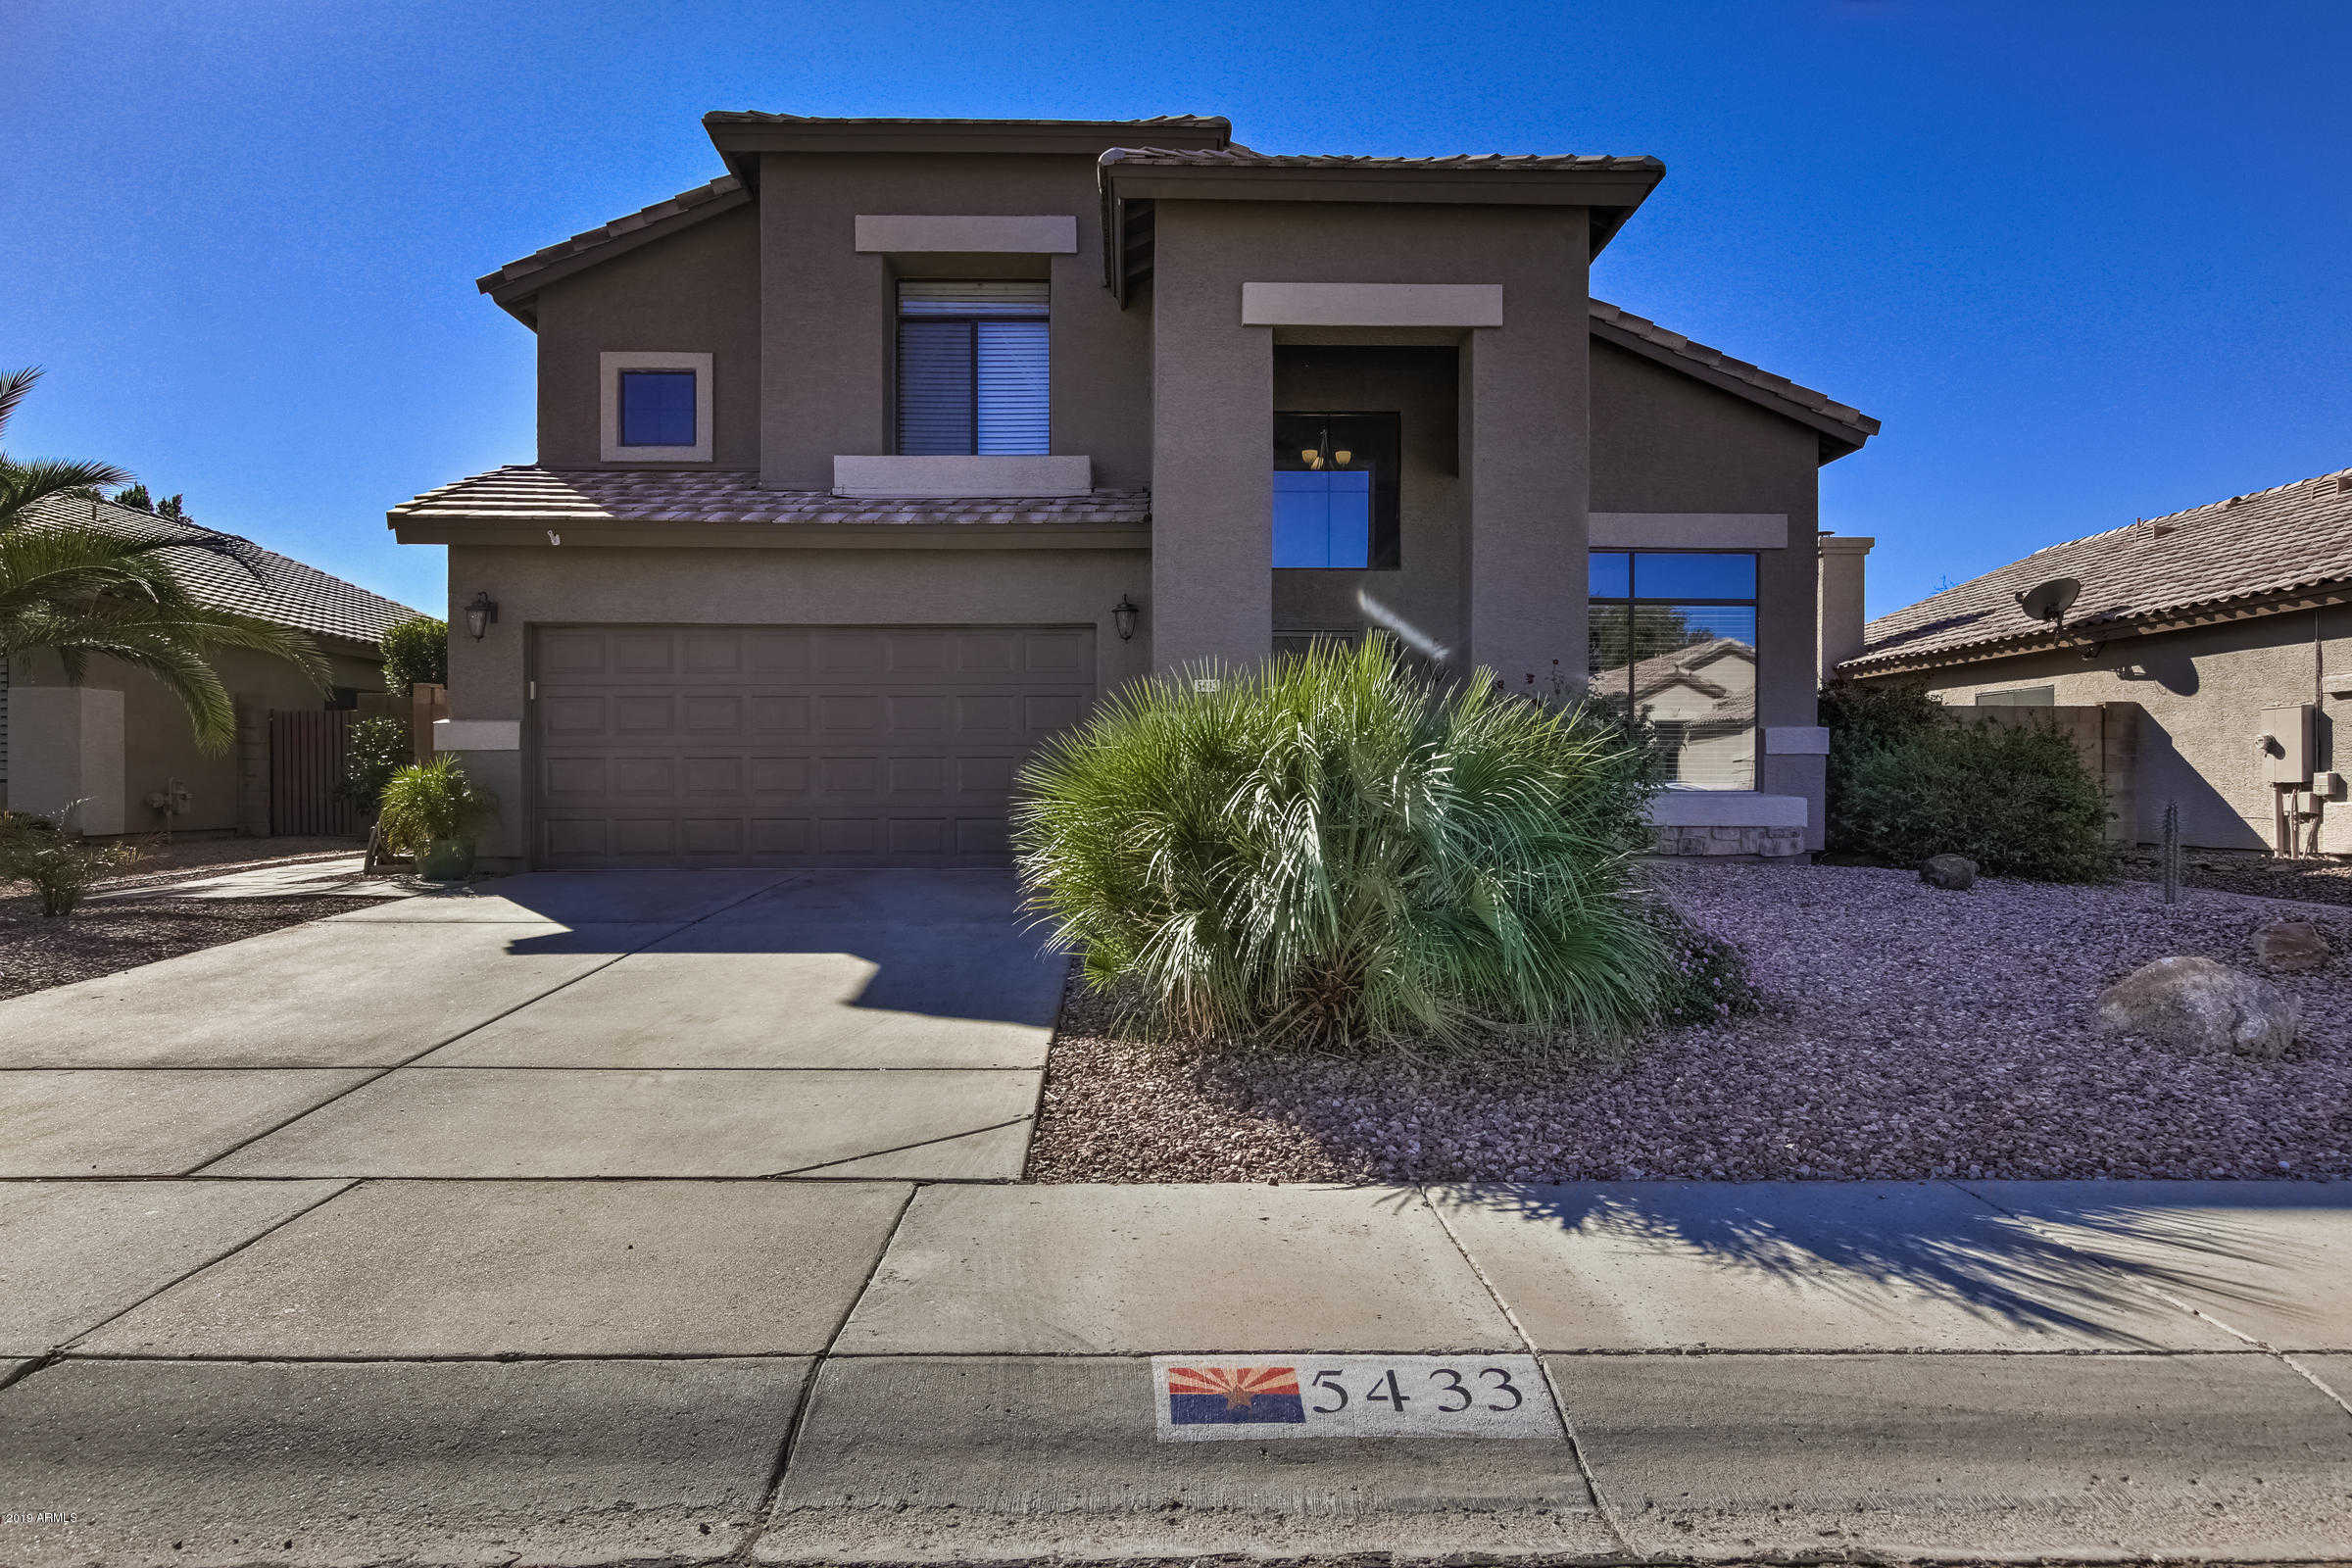 $340,000 - 3Br/3Ba - Home for Sale in Union Hills 1, Glendale